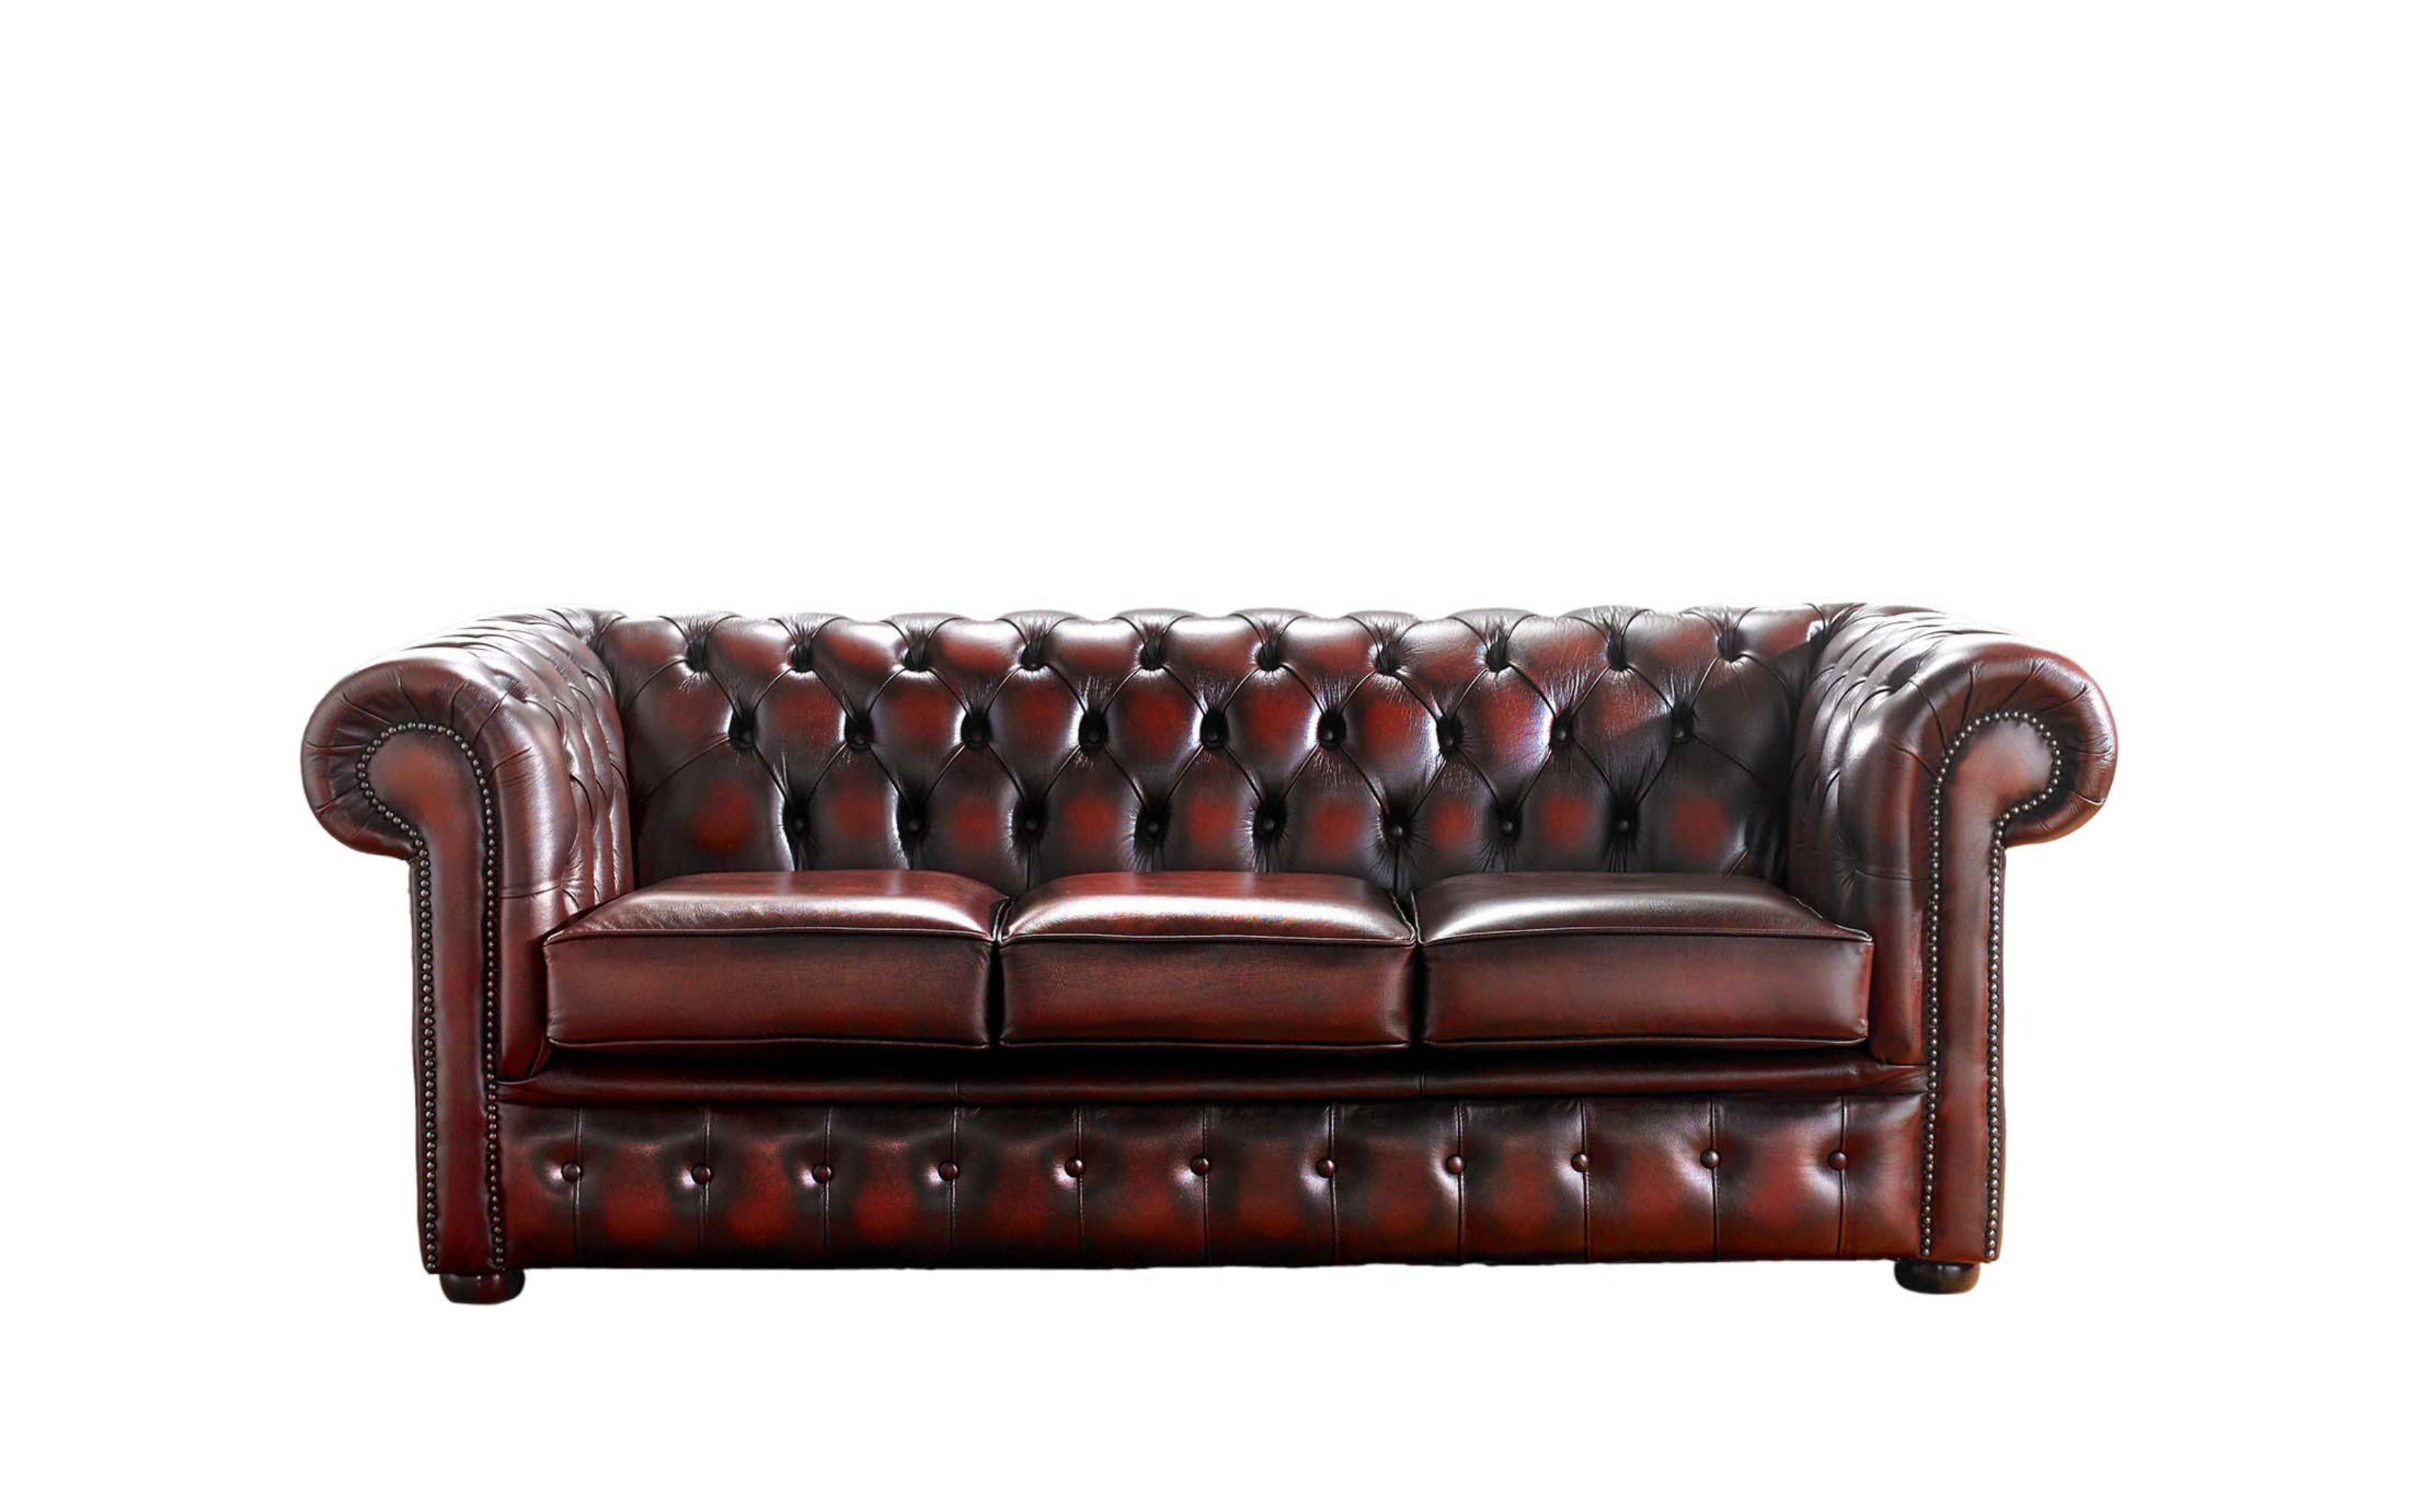 Picture of: Designersofas4u Buy 3 Seat Oxblood Leather Chesterfield Sofa